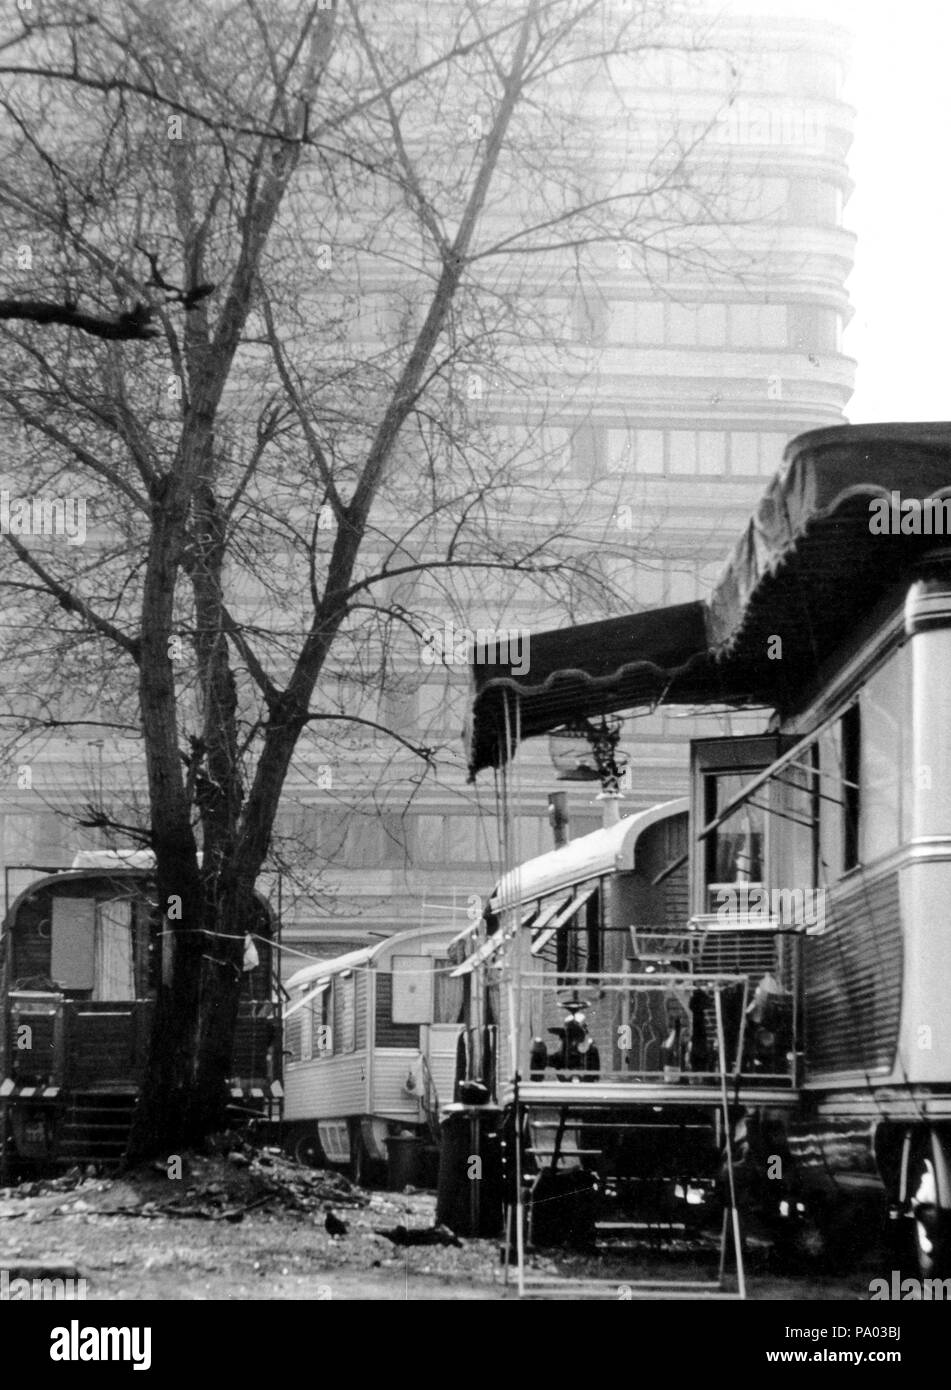 mobile homes of carnies, Milan, Italy, 70s - Stock Image